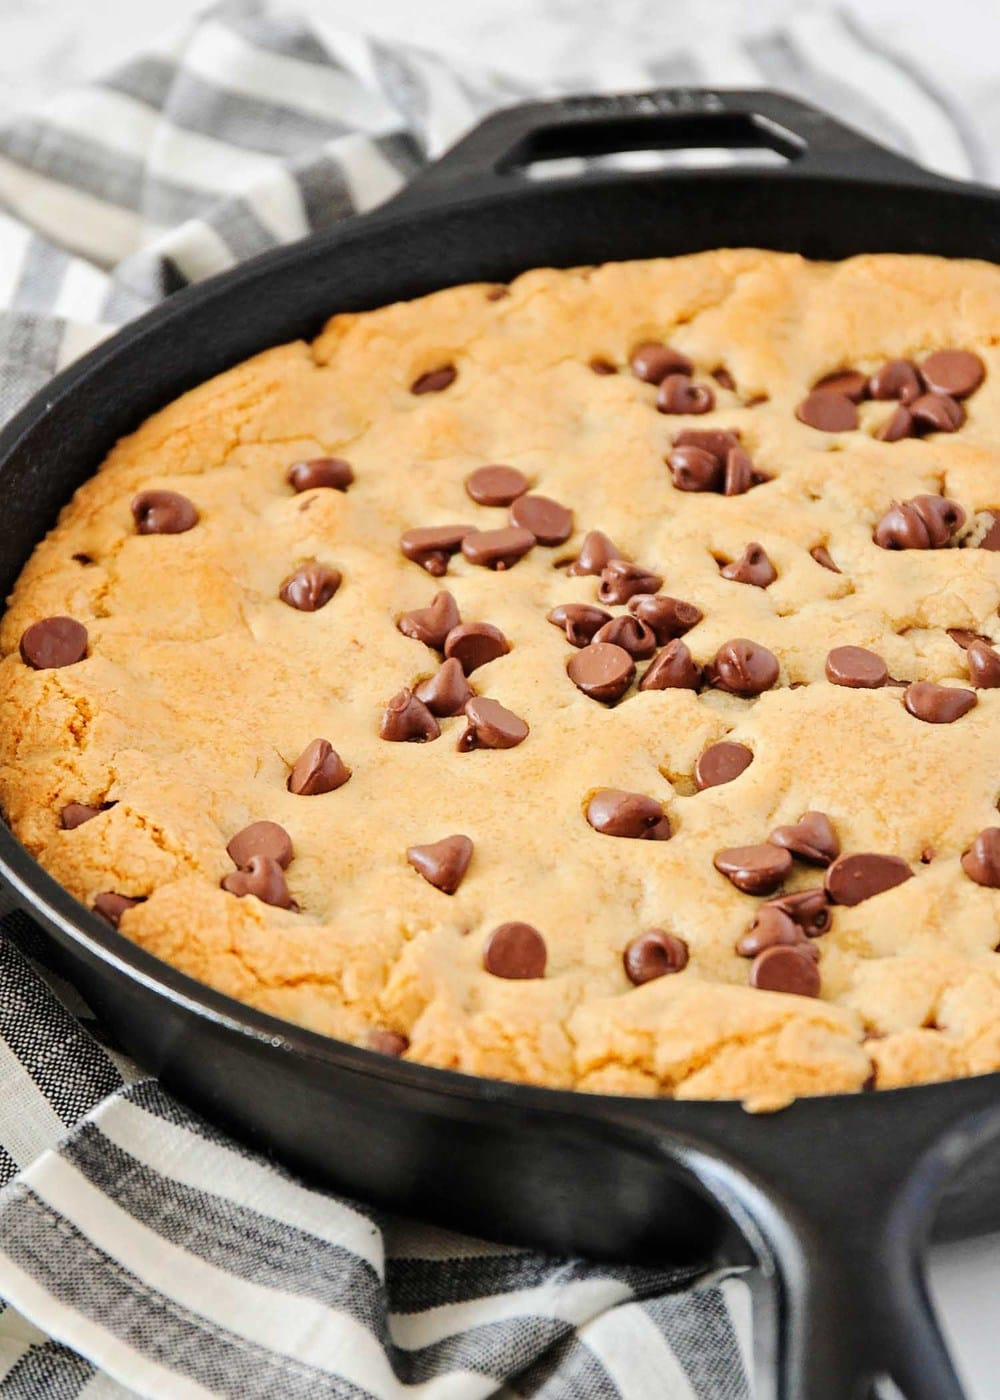 chocolate chip cookie in a cast iron skillet